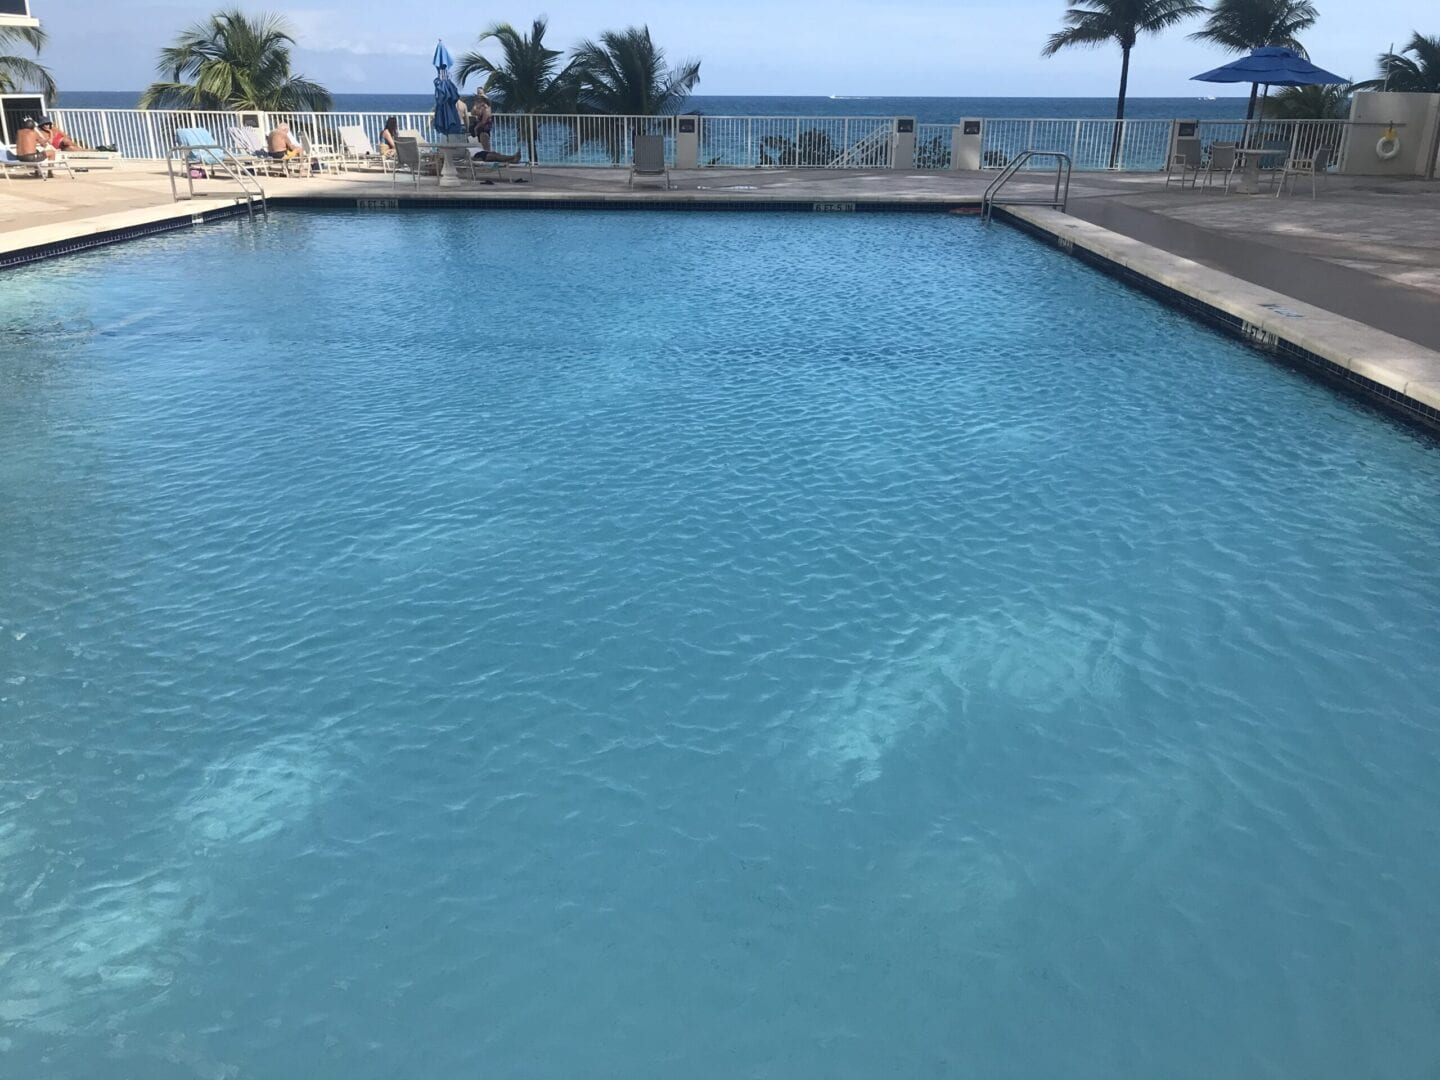 A wide pool enclosed by white fences with a view of the beach